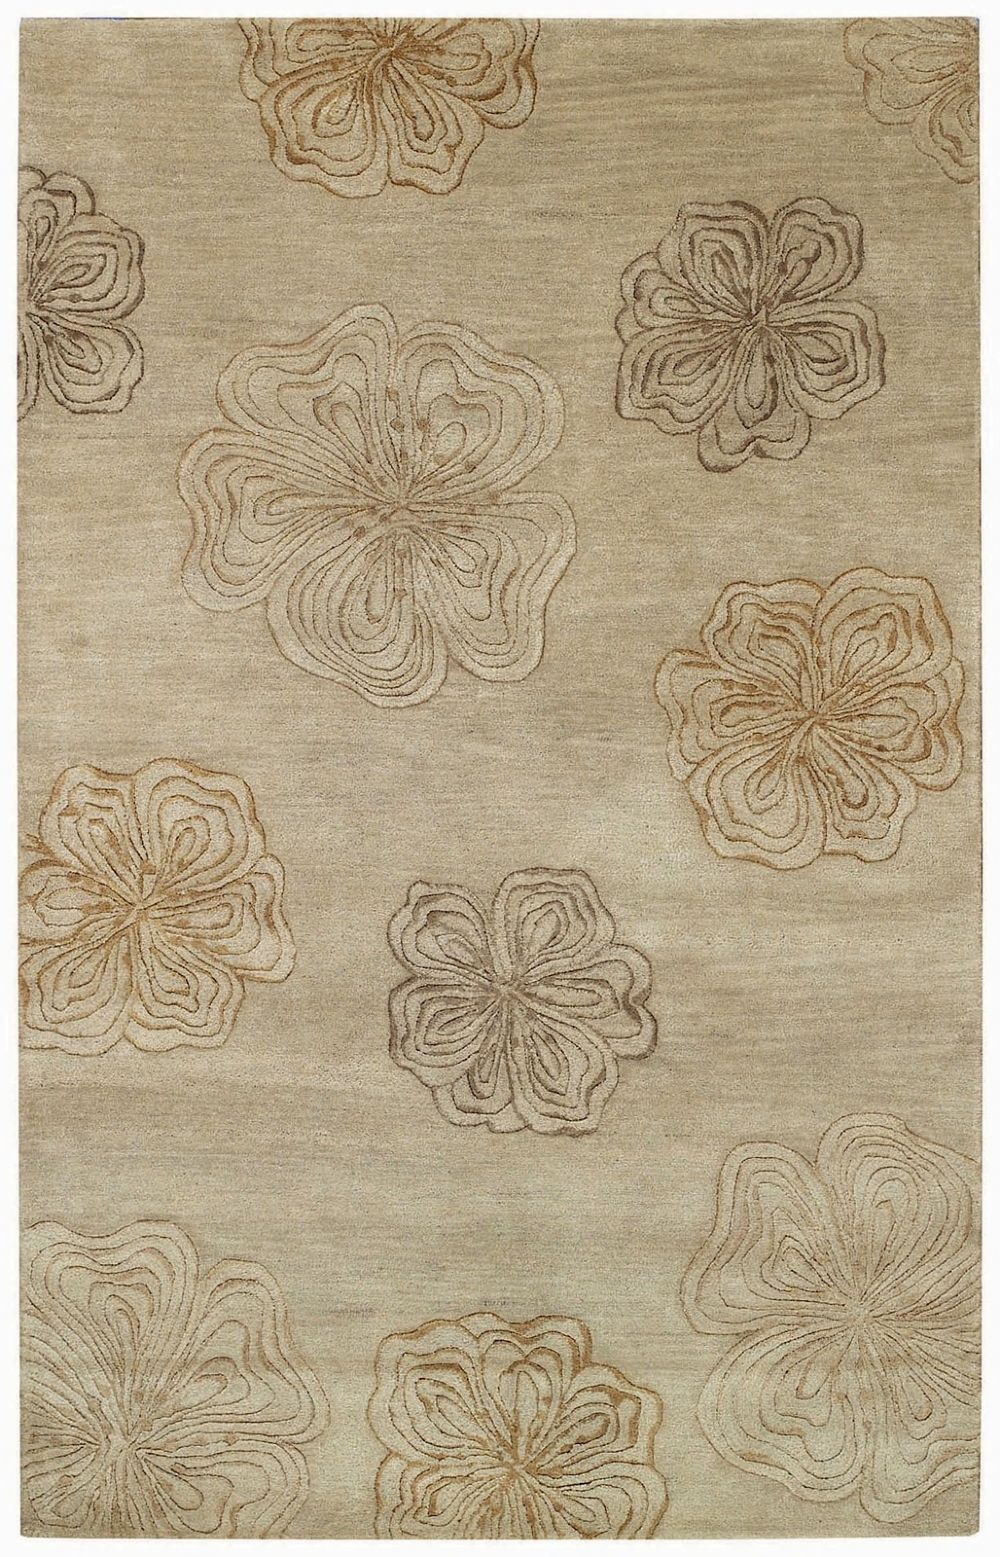 capel desert plateau-hibiscus contemporary area rug collection